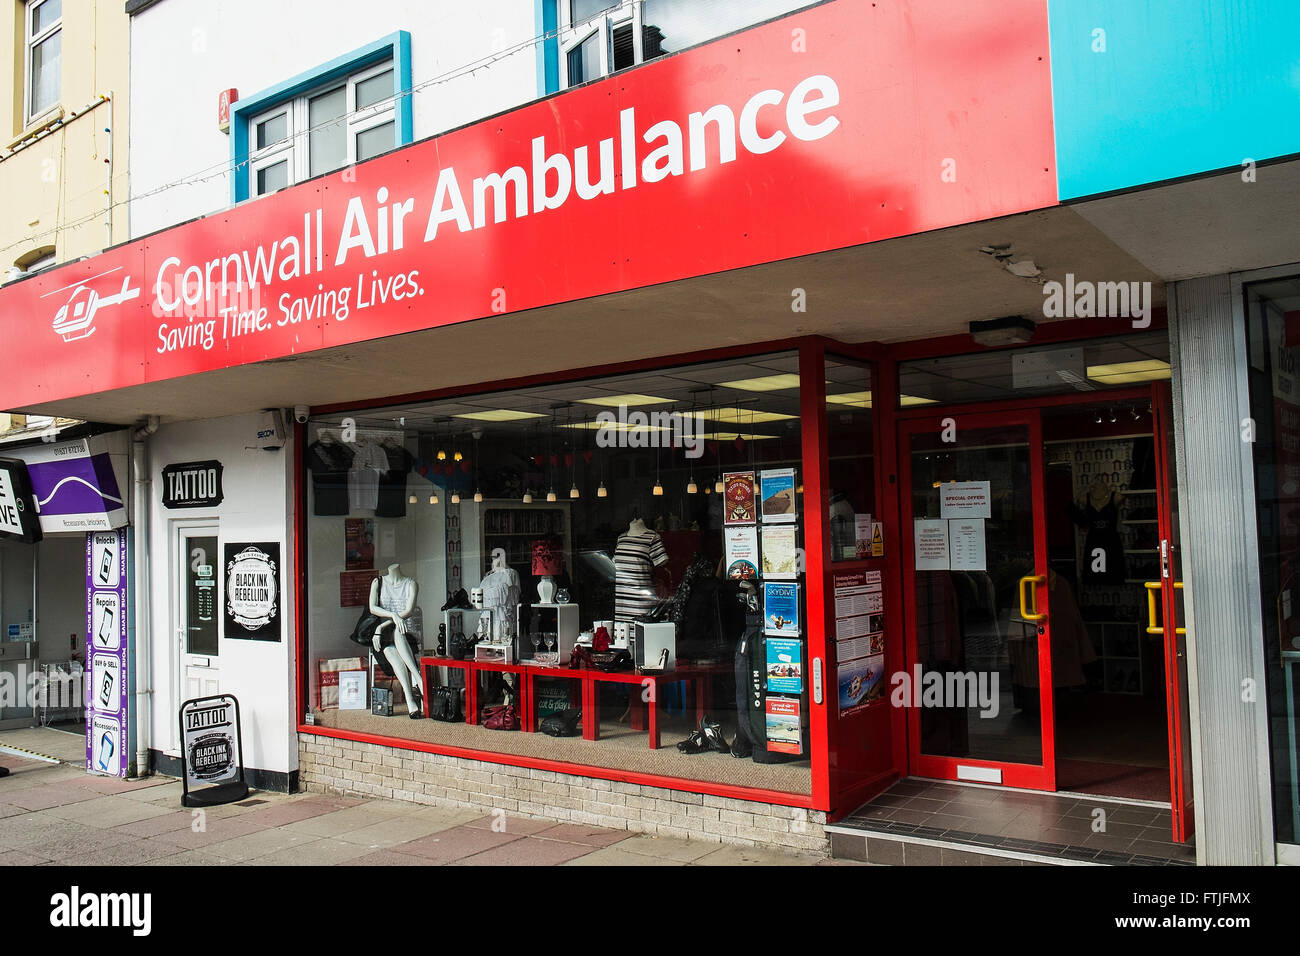 The Cornwall Air Ambulance charity shop in Newquay, Cornwall. - Stock Image